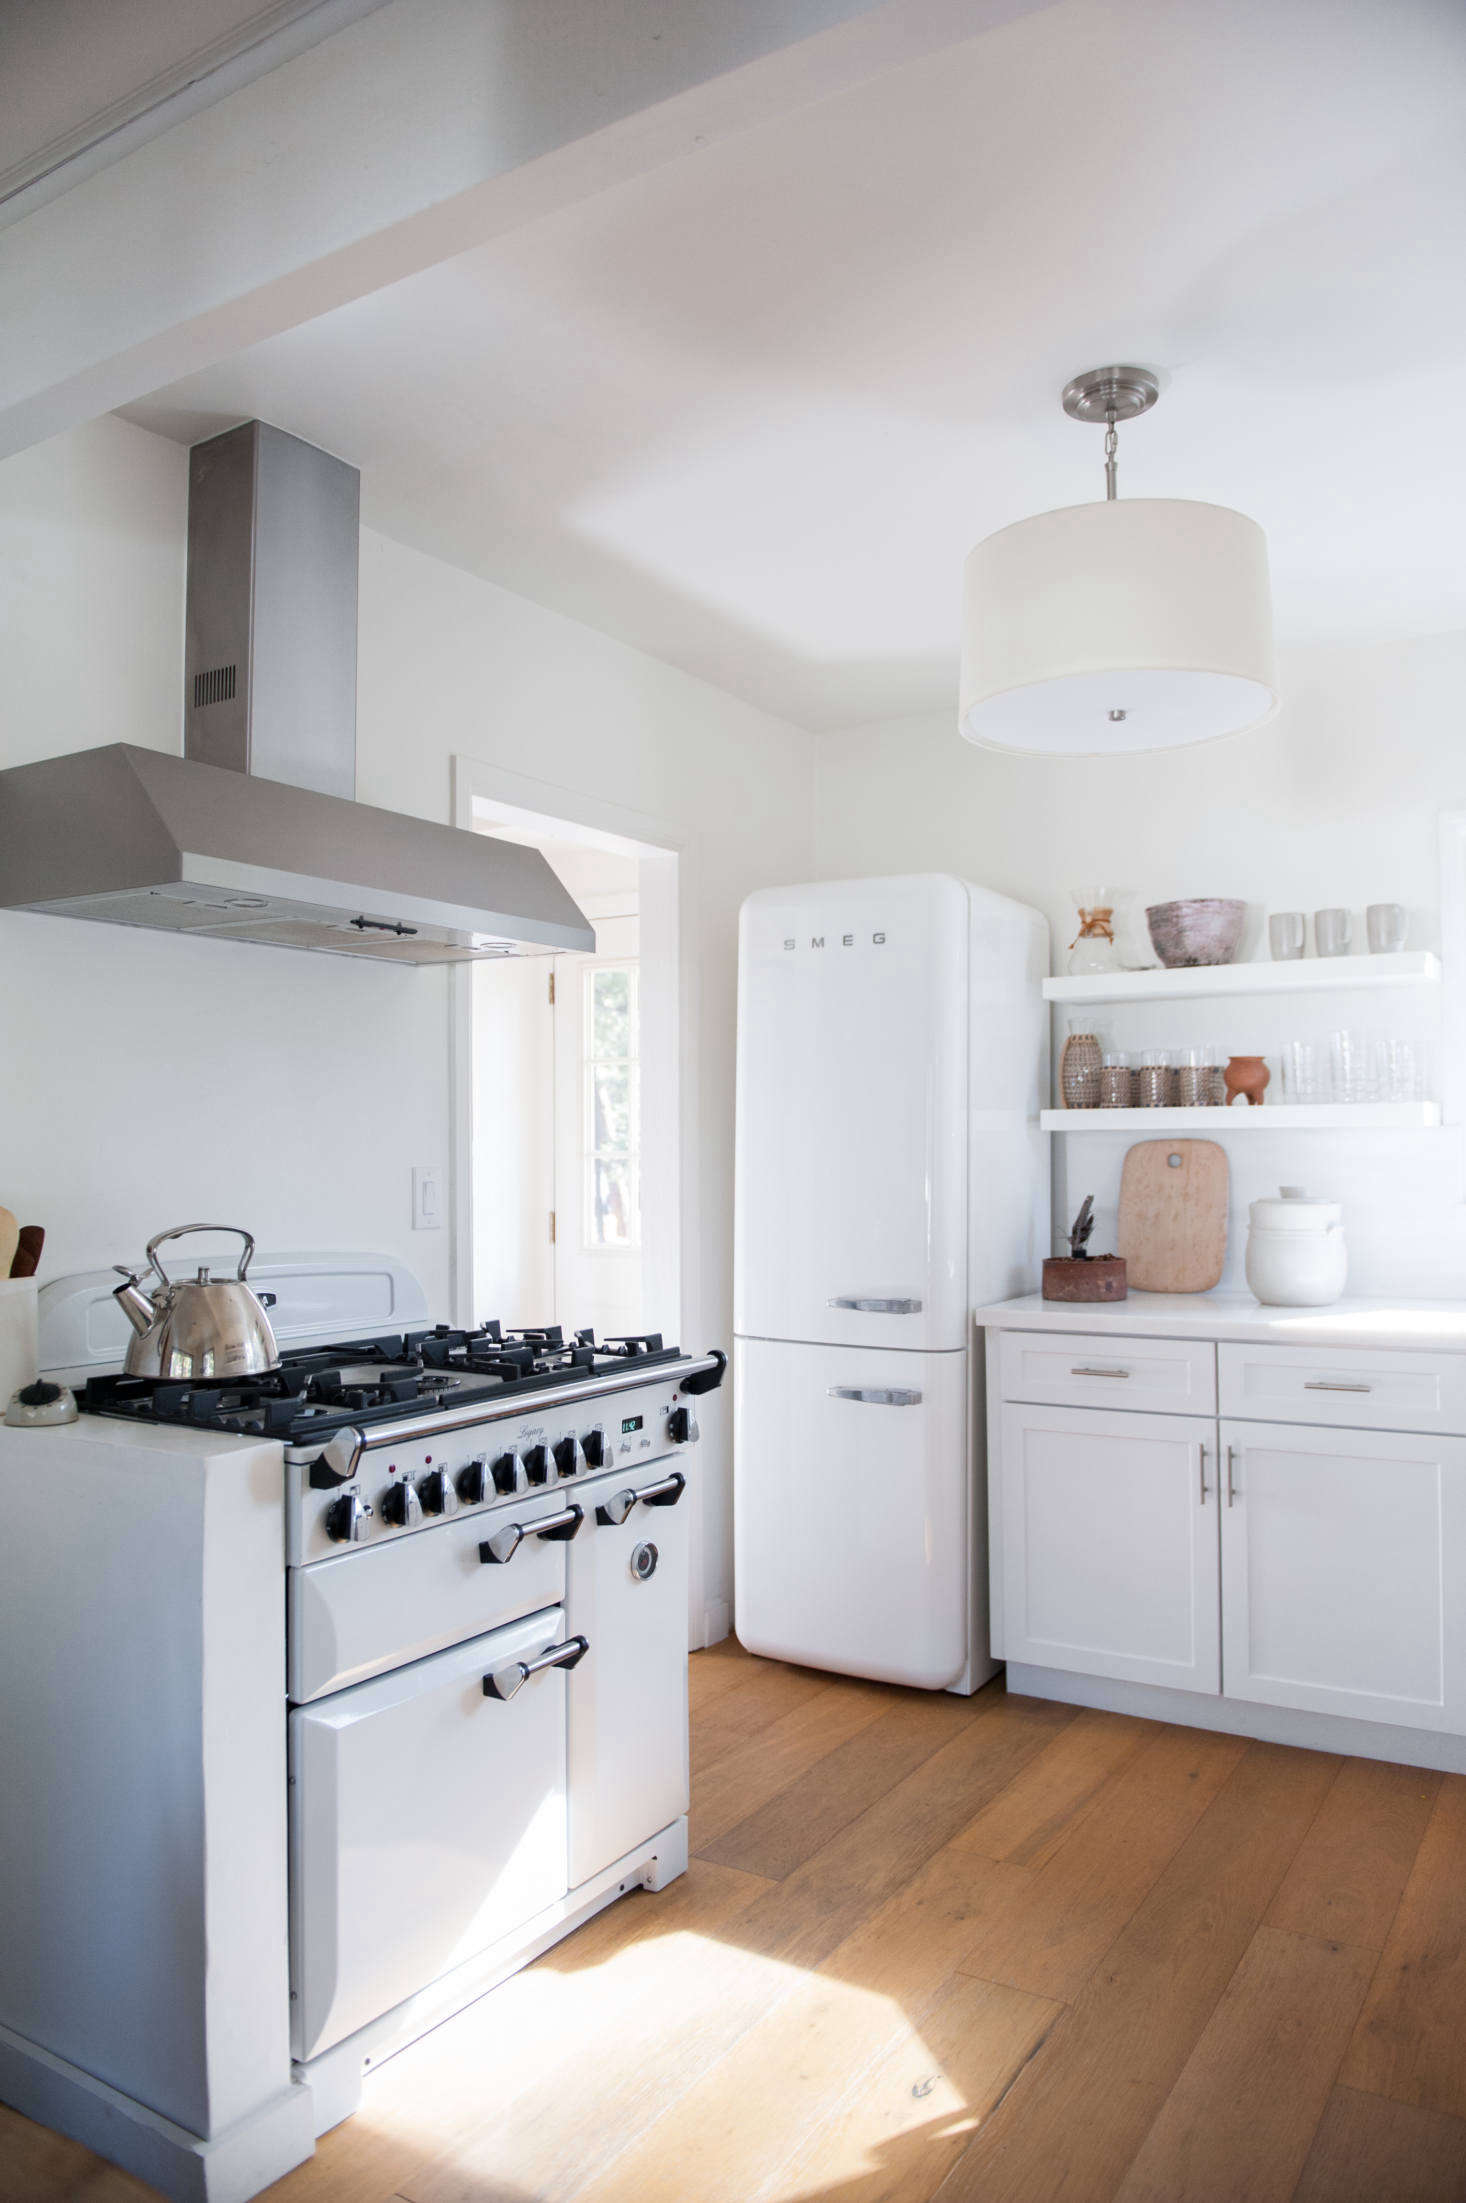 Wire-brushed, engineered wide-plank oak floorboards replaced the kitchen's wood laminate (as well as the living room and bedroom's wall-to-wall carpeting). The range is Aga's Three Oven gas model.